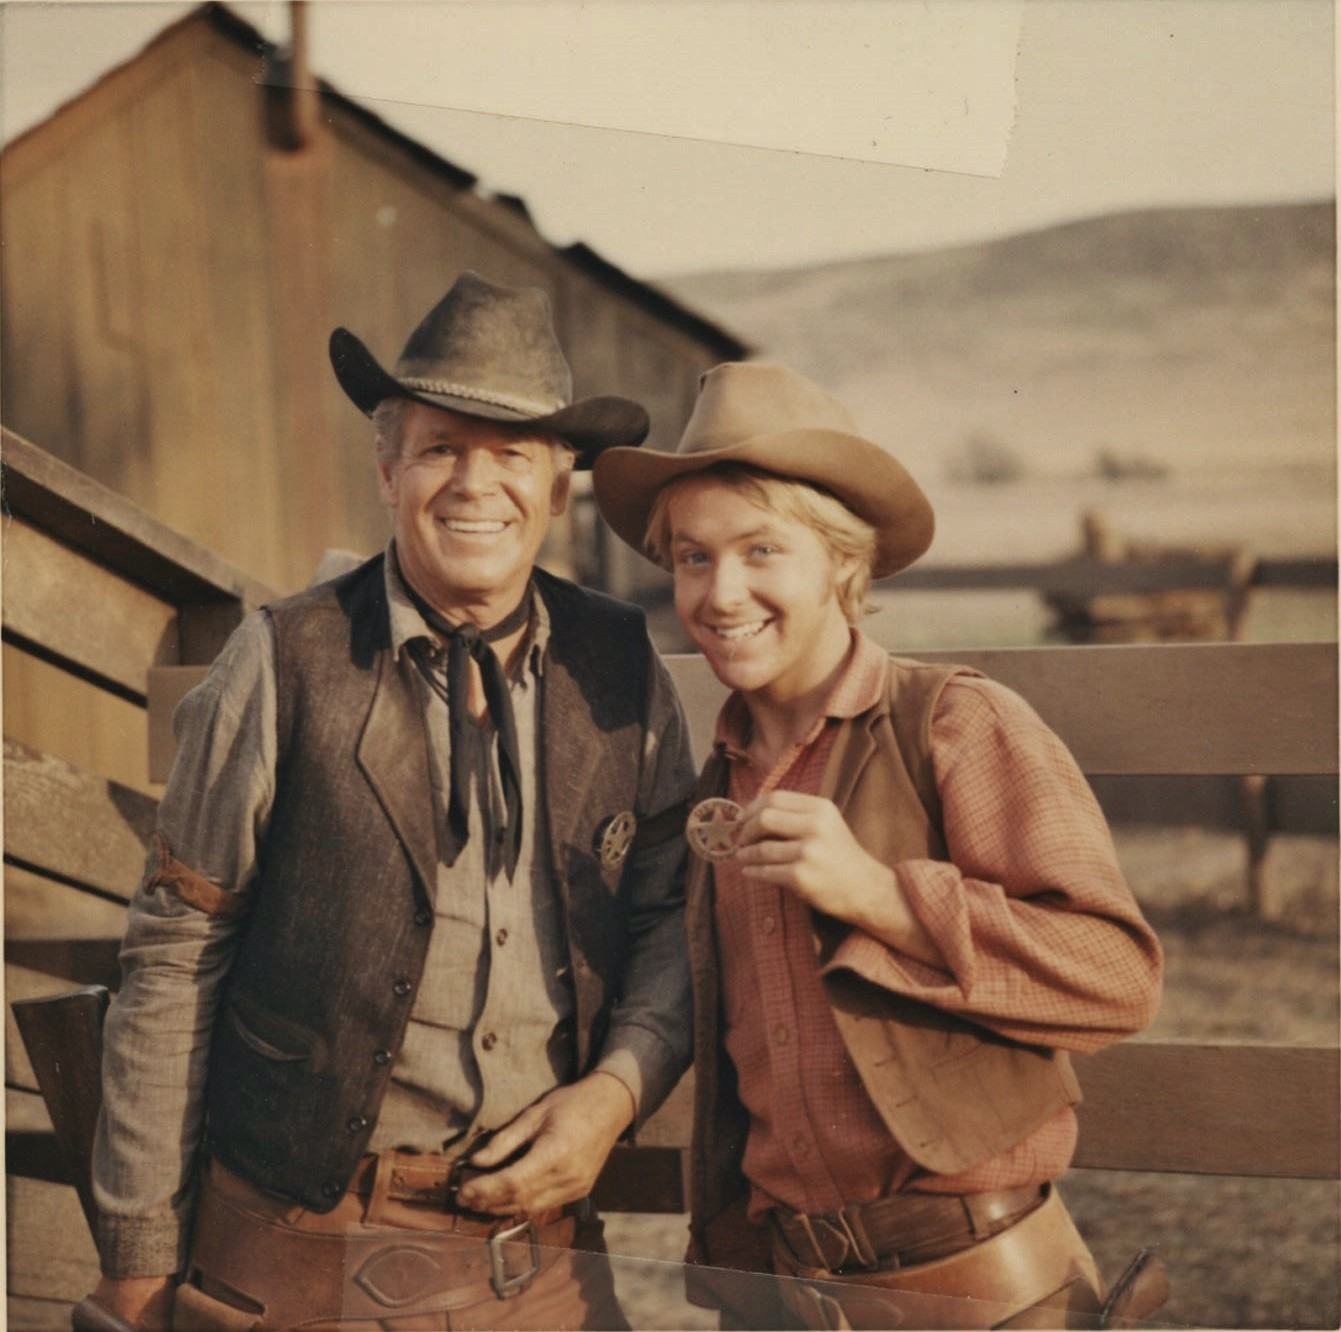 """Dan Duryea and Michael Parks joke around in this behind the scenes candid from the 1967 NBC western """"Stranger on the Run"""""""